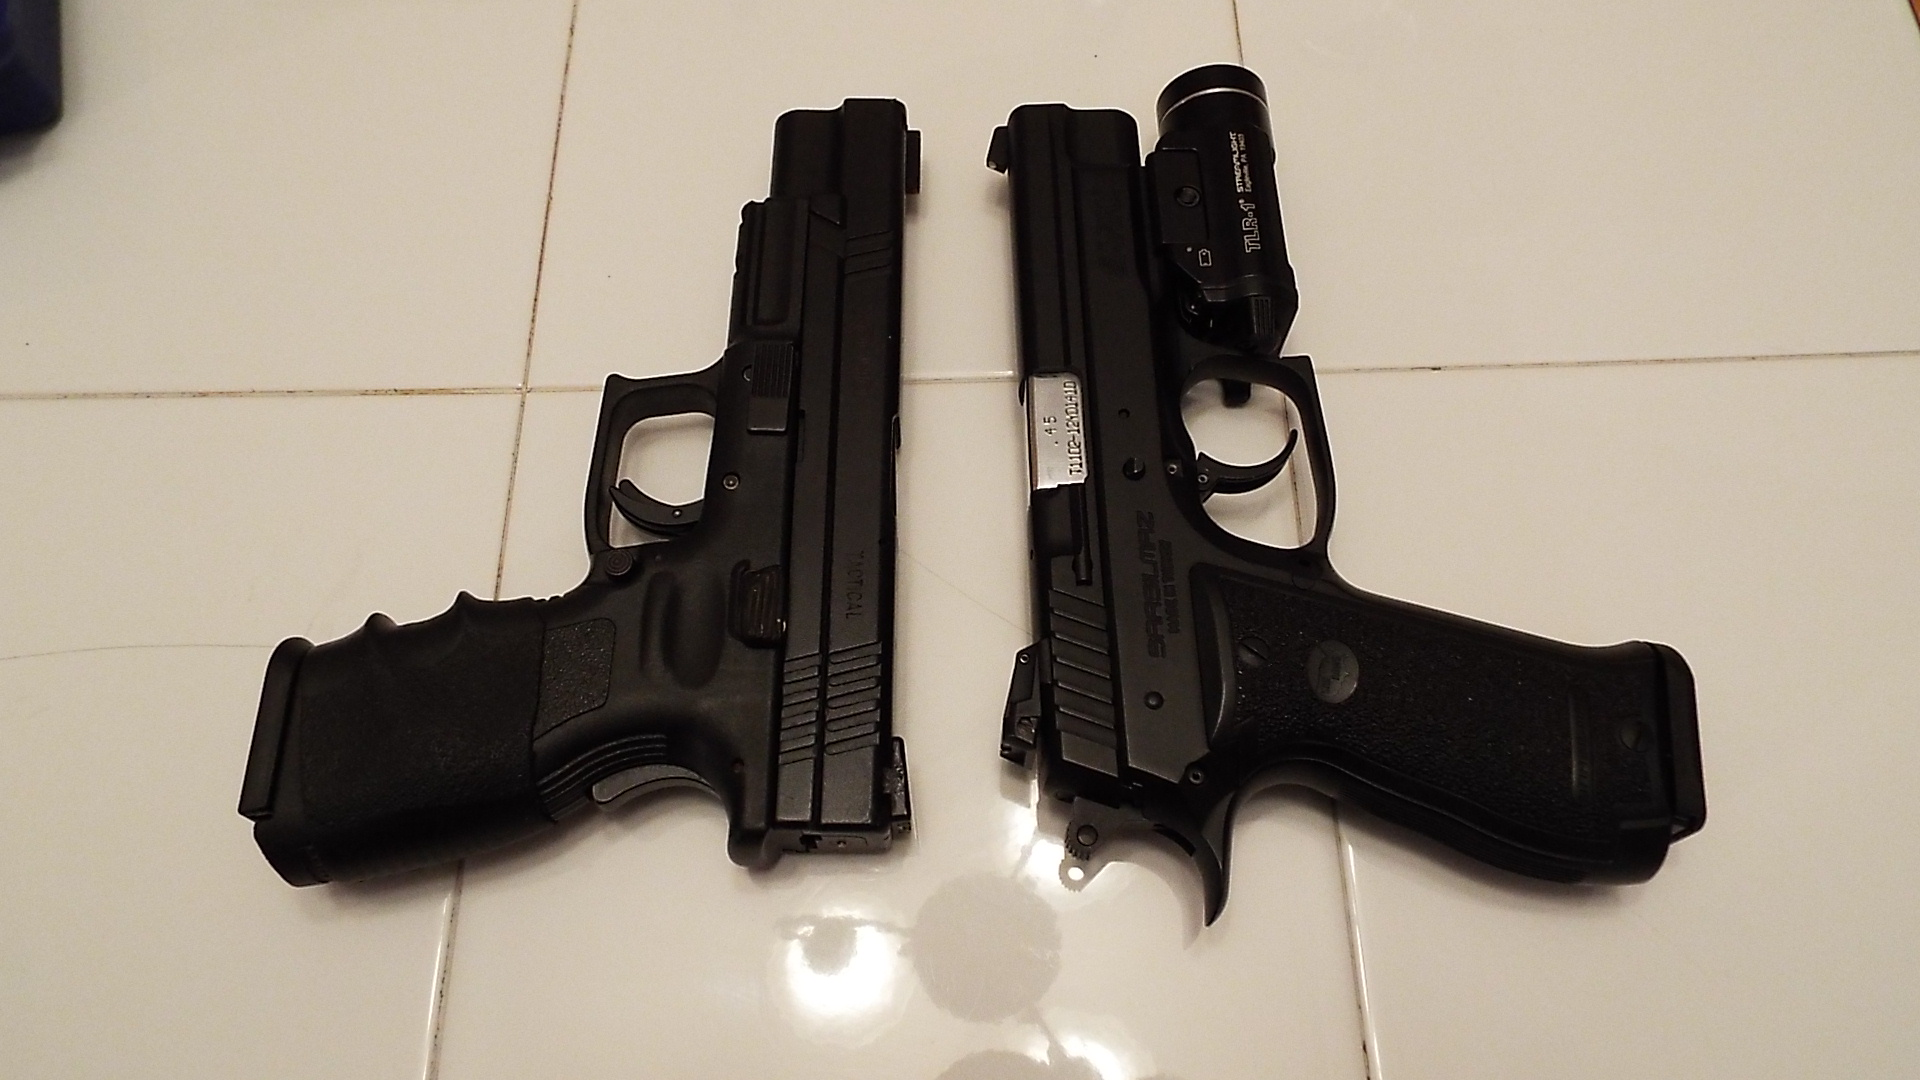 EAA K2 Double stack 45 | Page 2 | Springfield XD Forum